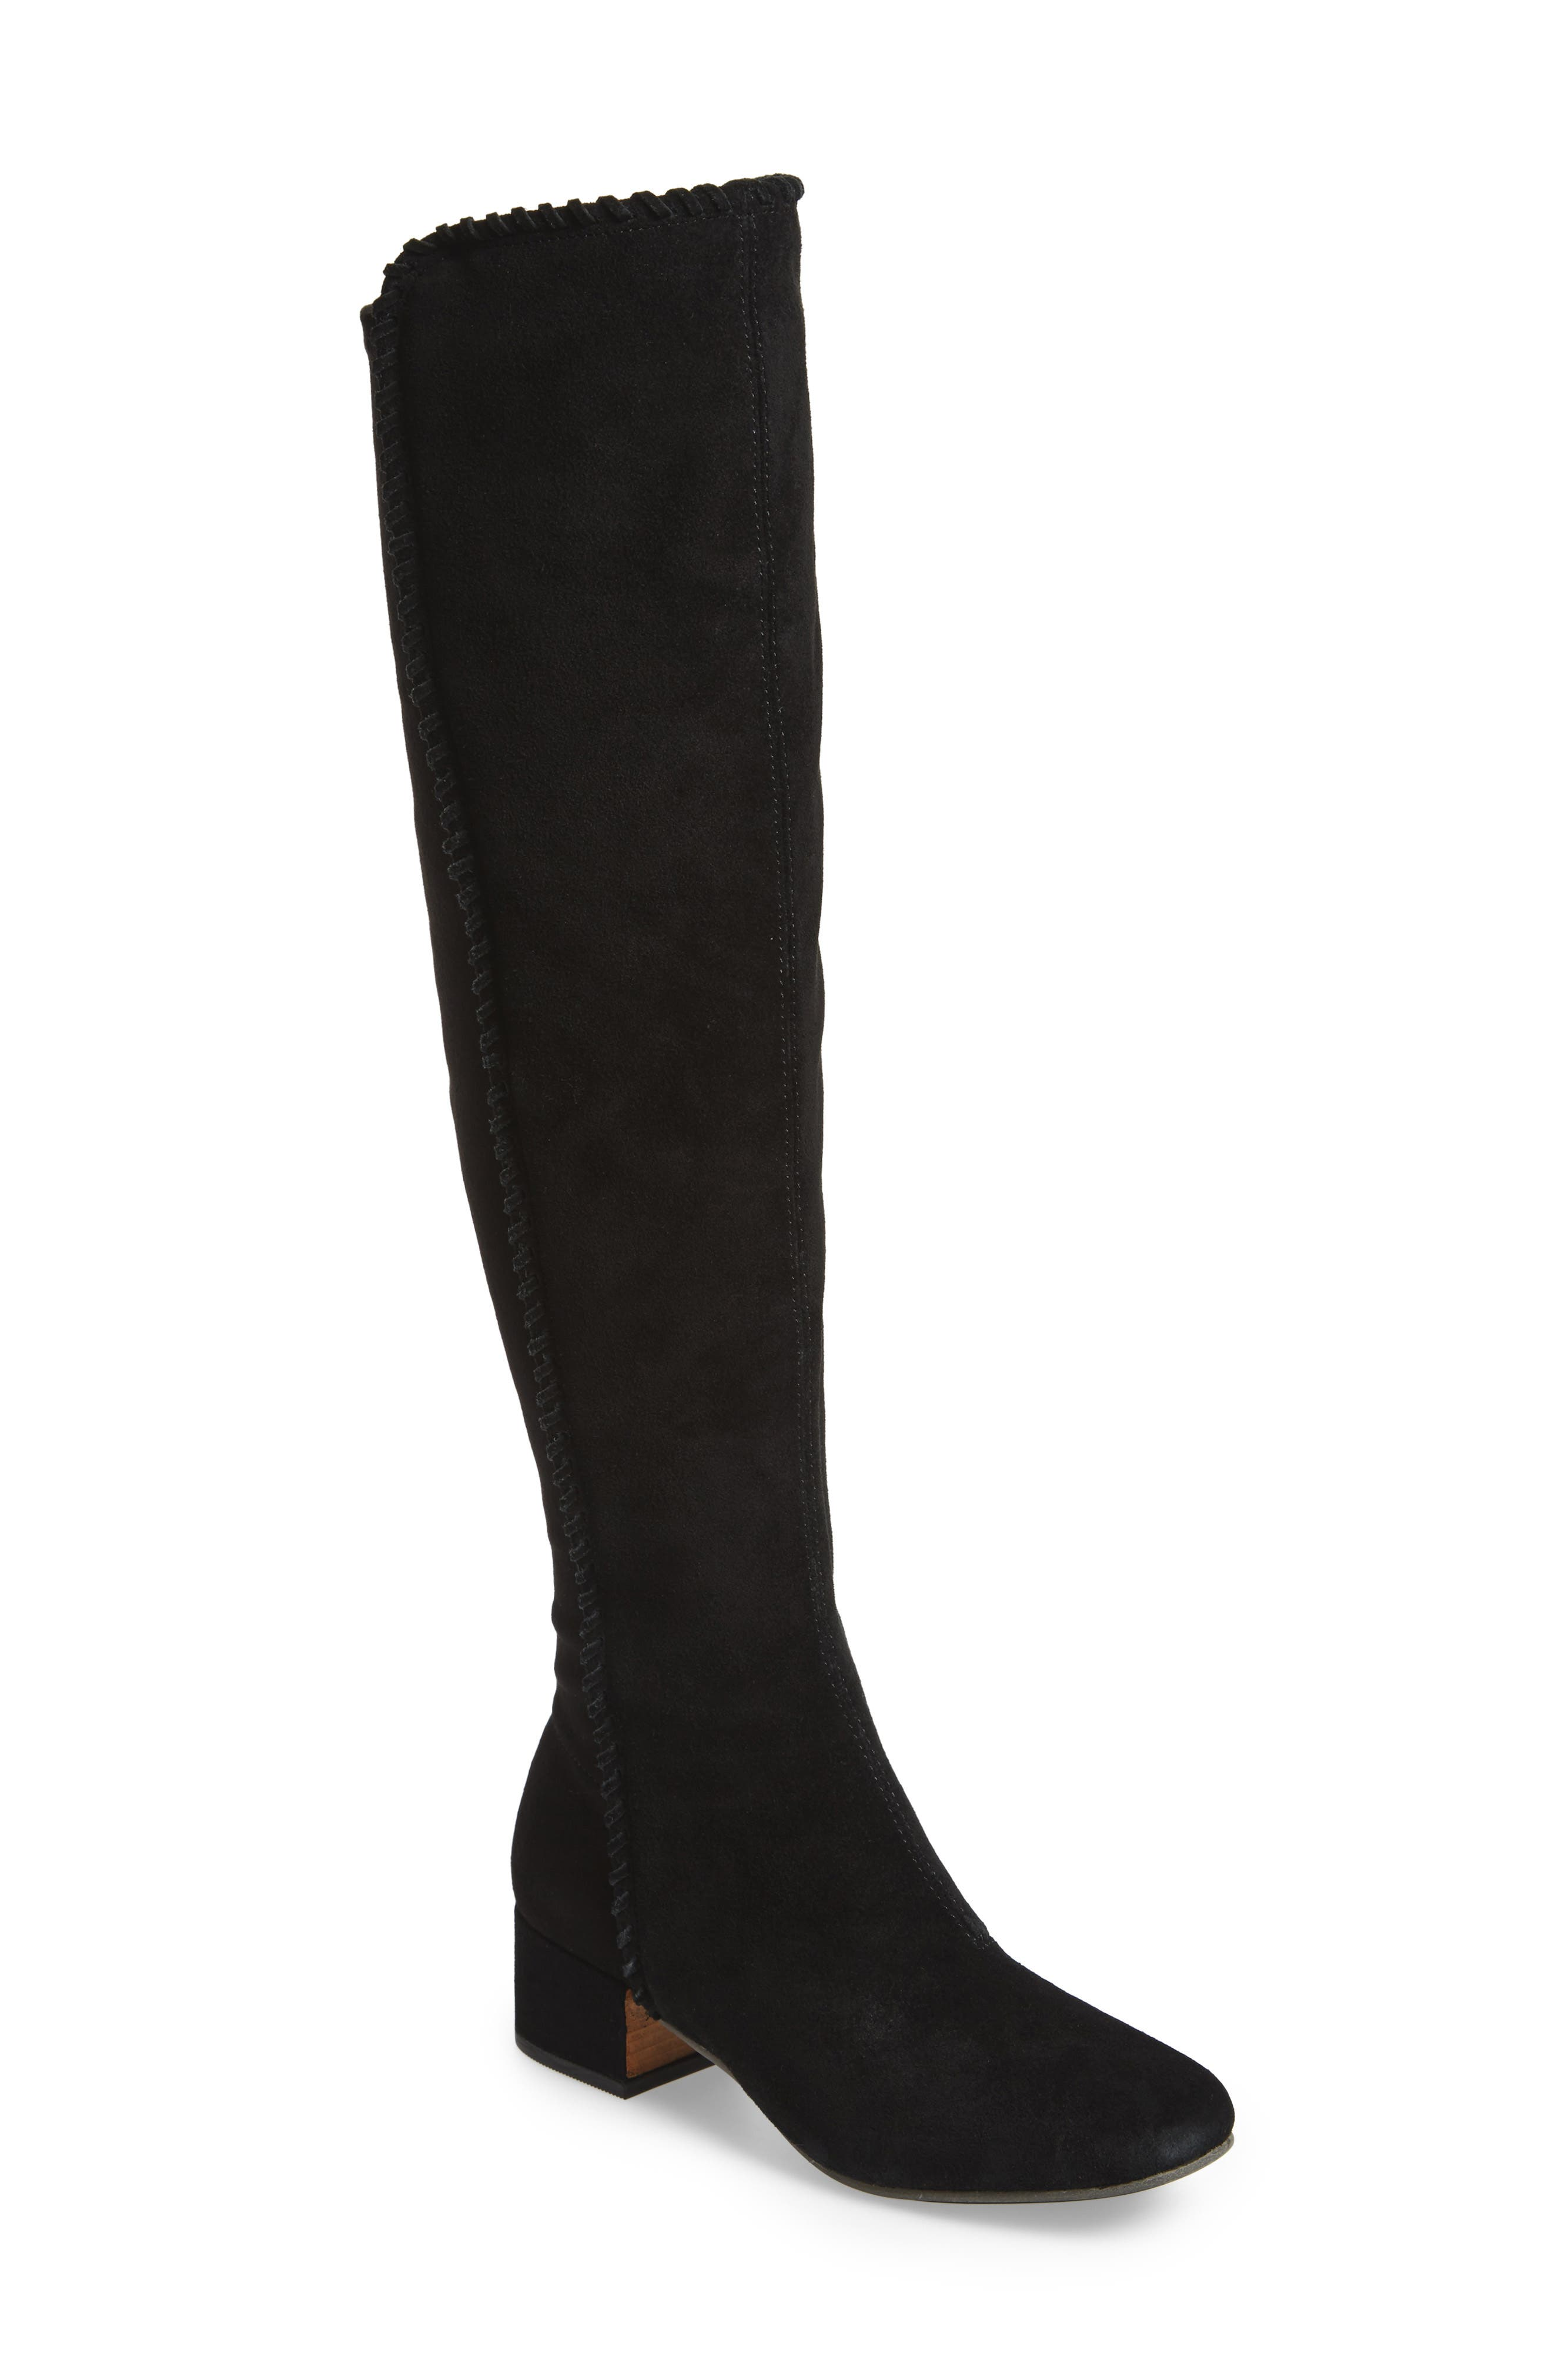 Gentle Souls Emery Over the Knee Boot,                         Main,                         color, 001